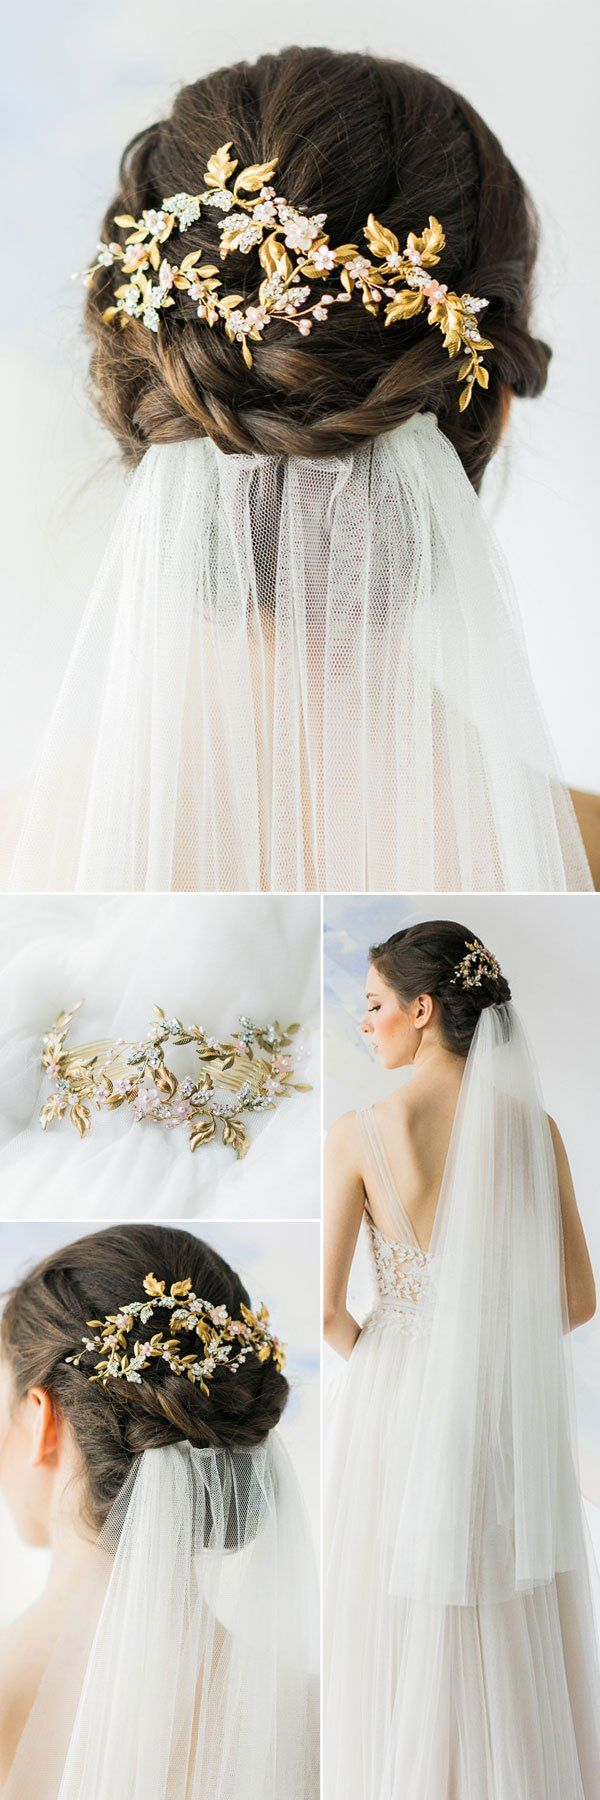 top 20 wedding hairstyles with veils and accessories